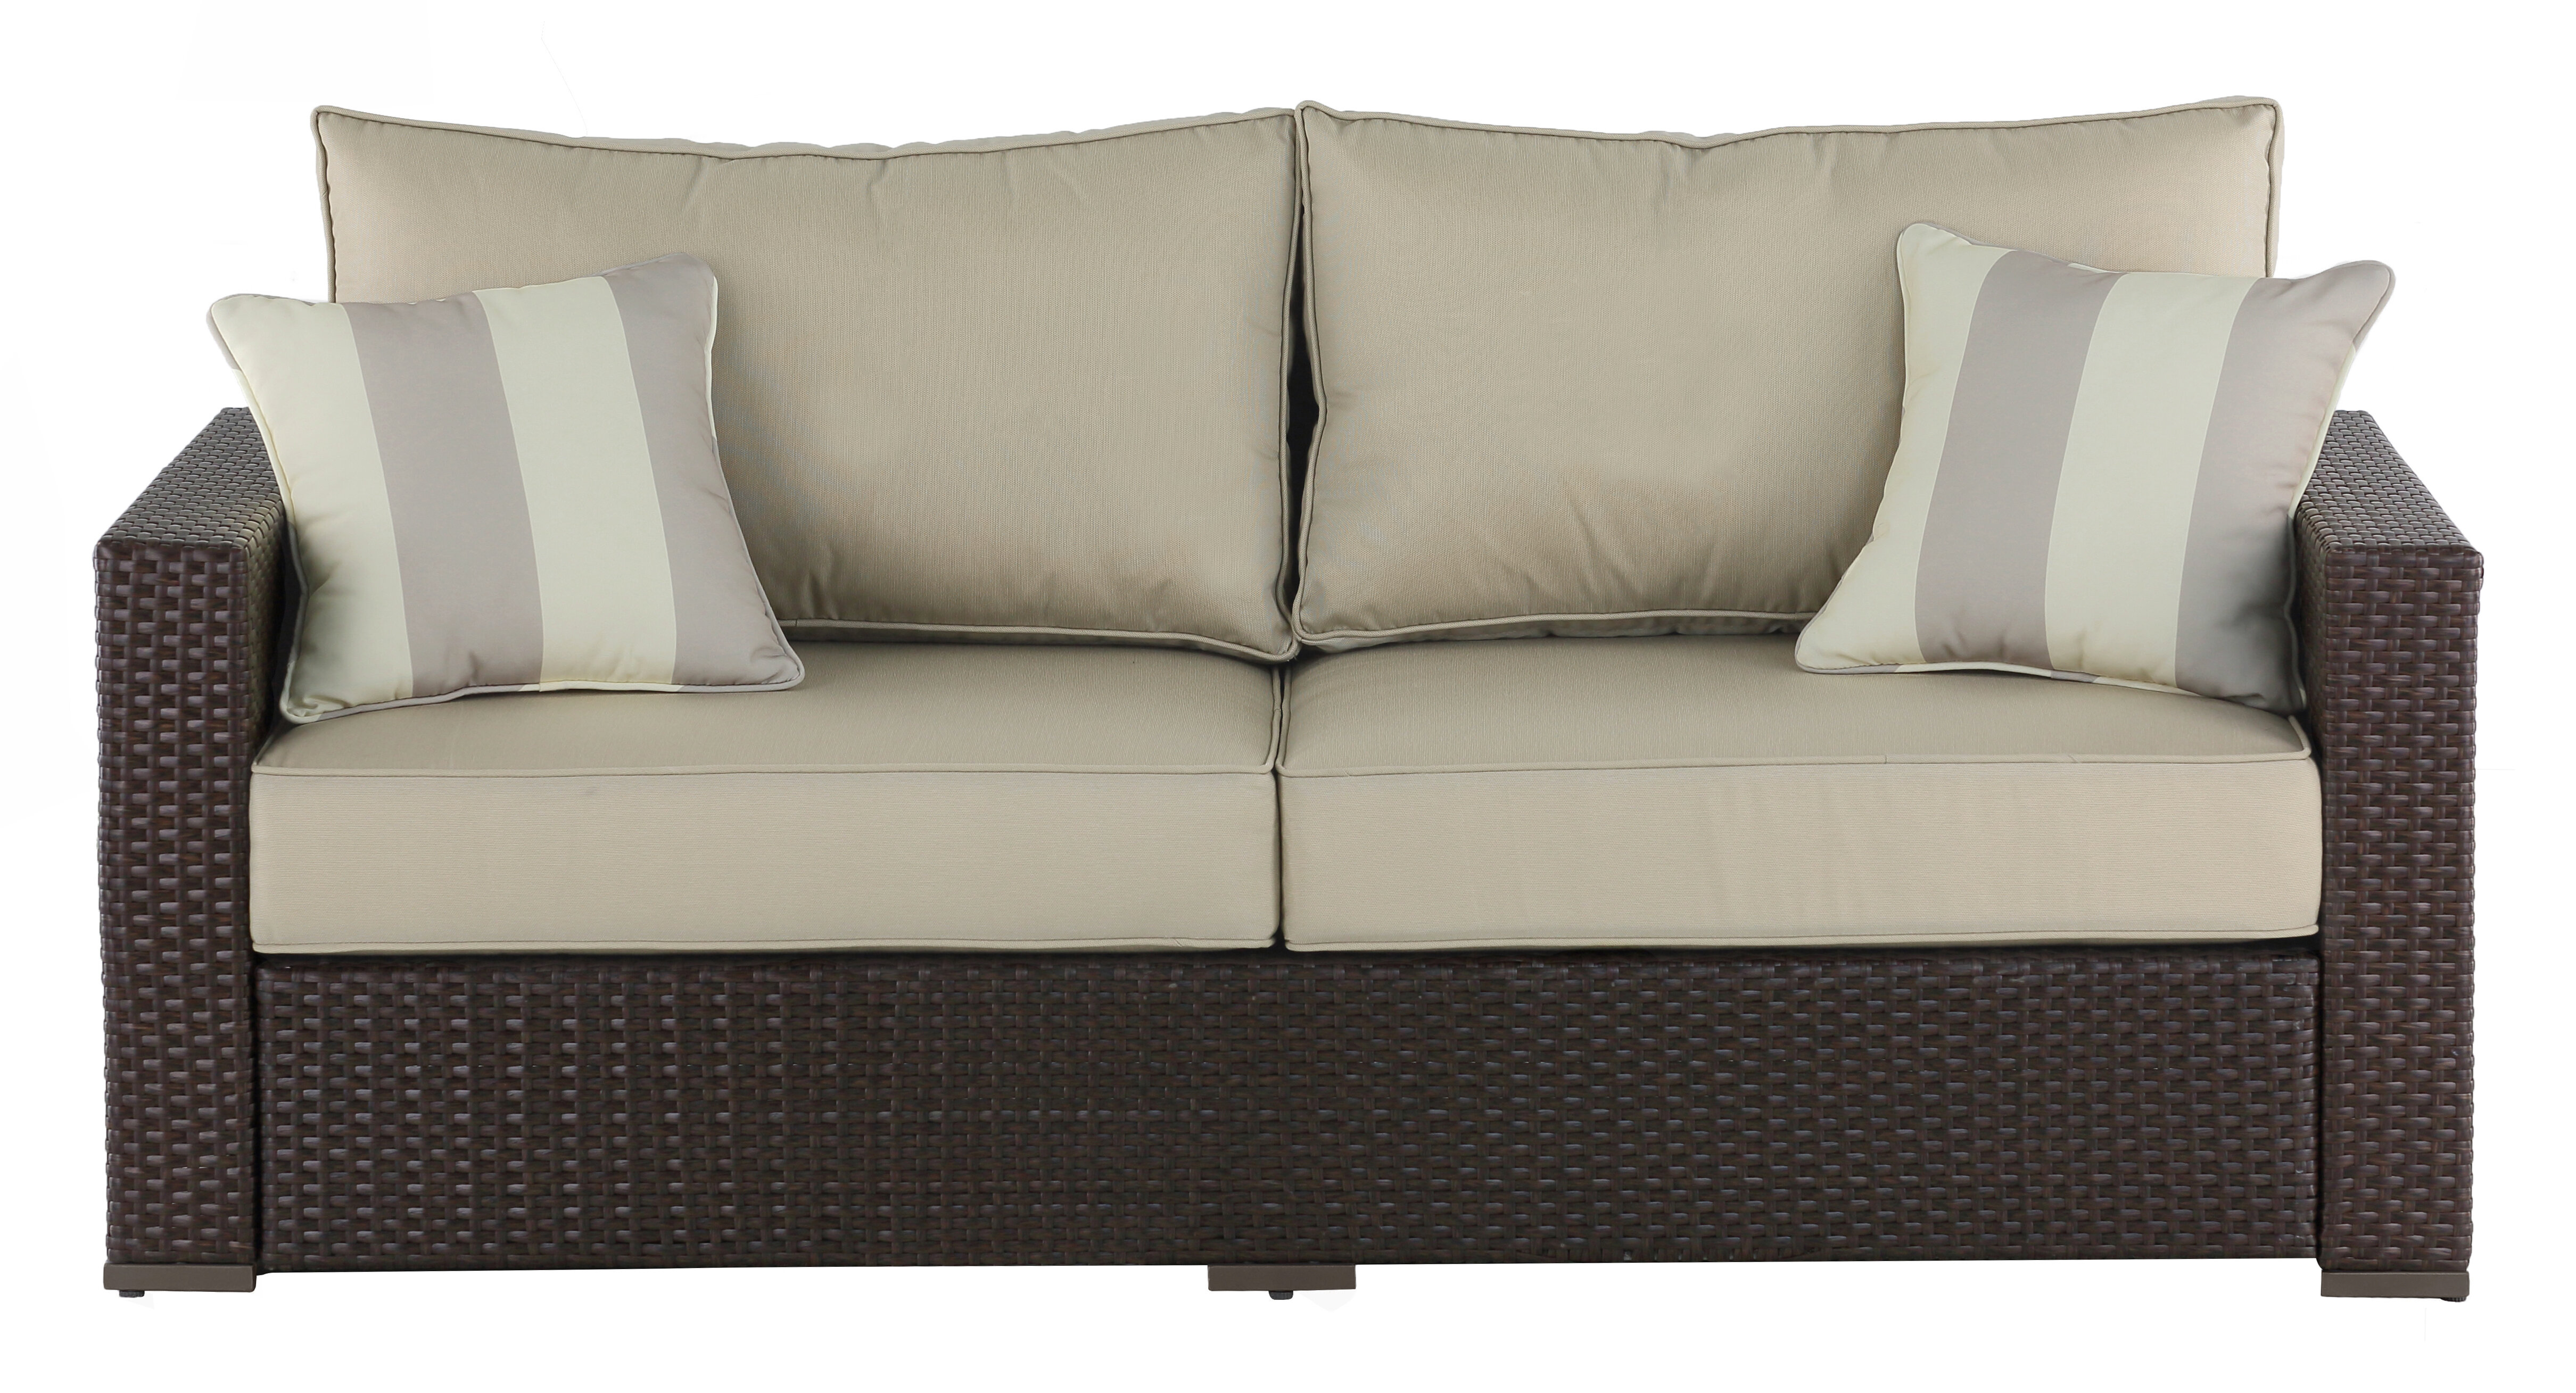 Admirable Laguna Outdoor Sofa With Cushions Caraccident5 Cool Chair Designs And Ideas Caraccident5Info